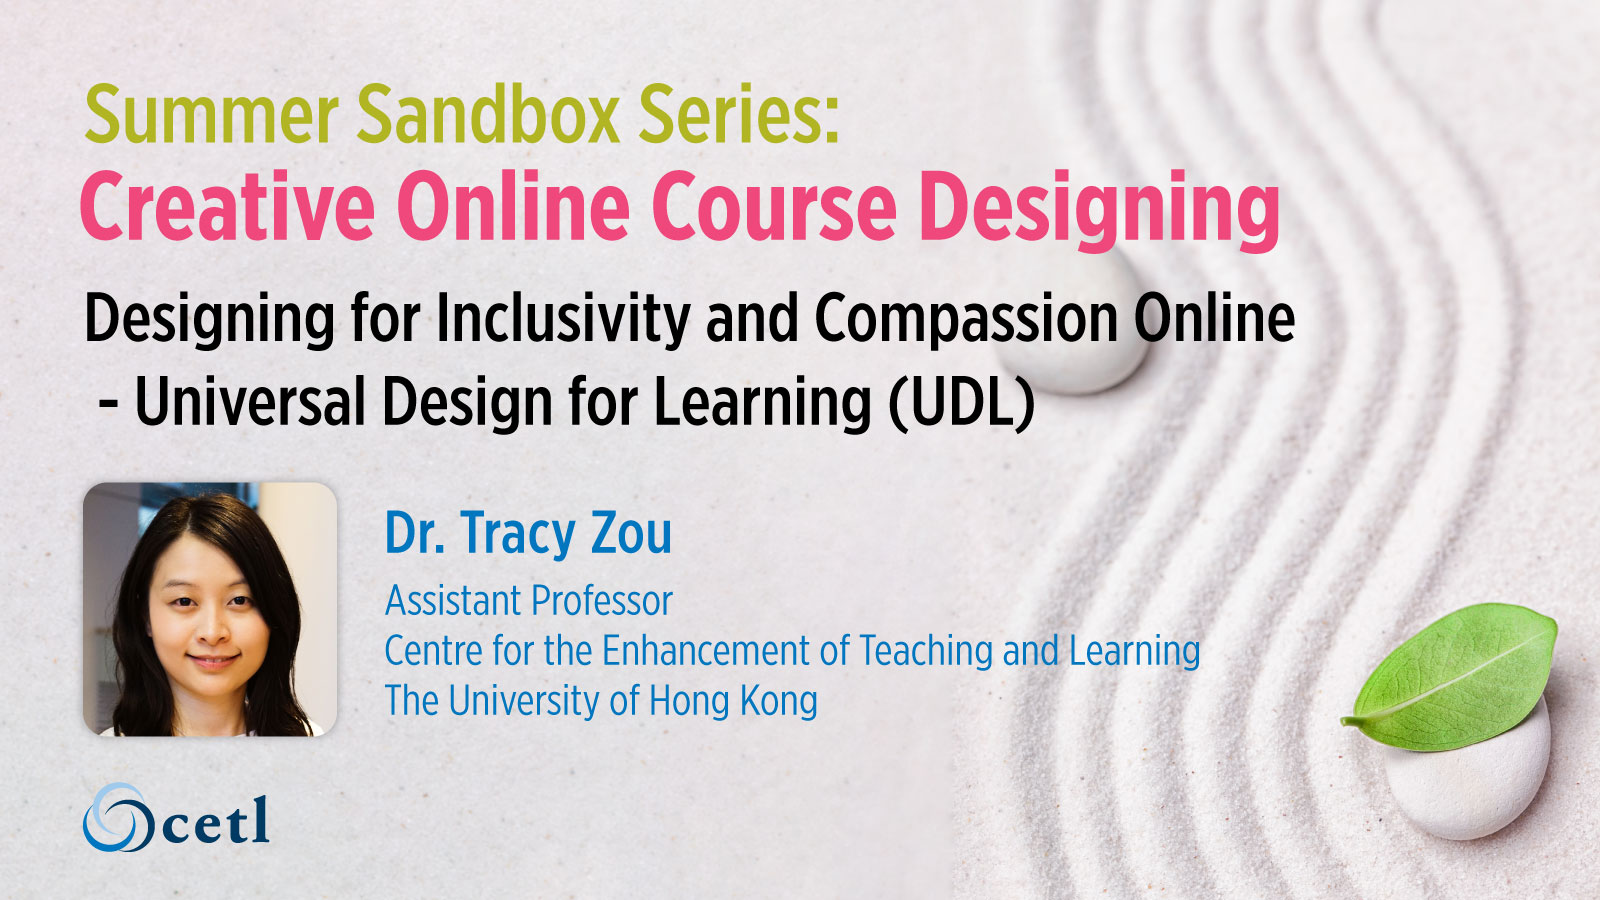 Designing for Inclusivity and Compassion Online - Universal Design for Learning (UDL)